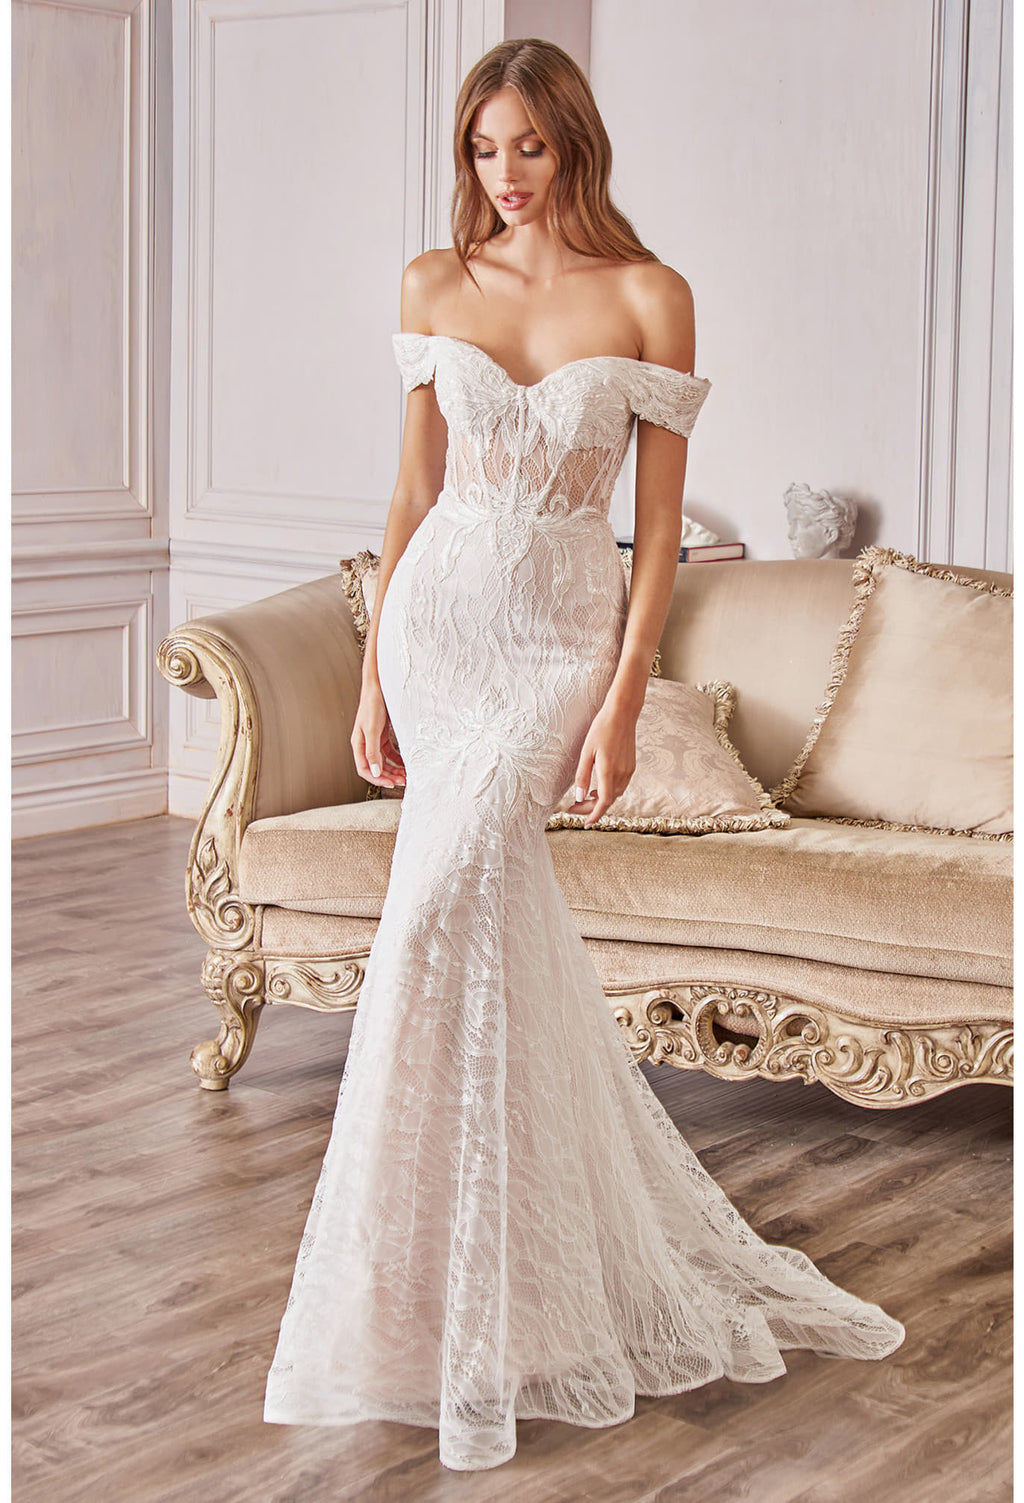 Jolie bridal gown lace placement that falls flatteringly on the body, perfect mermaid silhouette - KC Haute Couture Wedding Dress